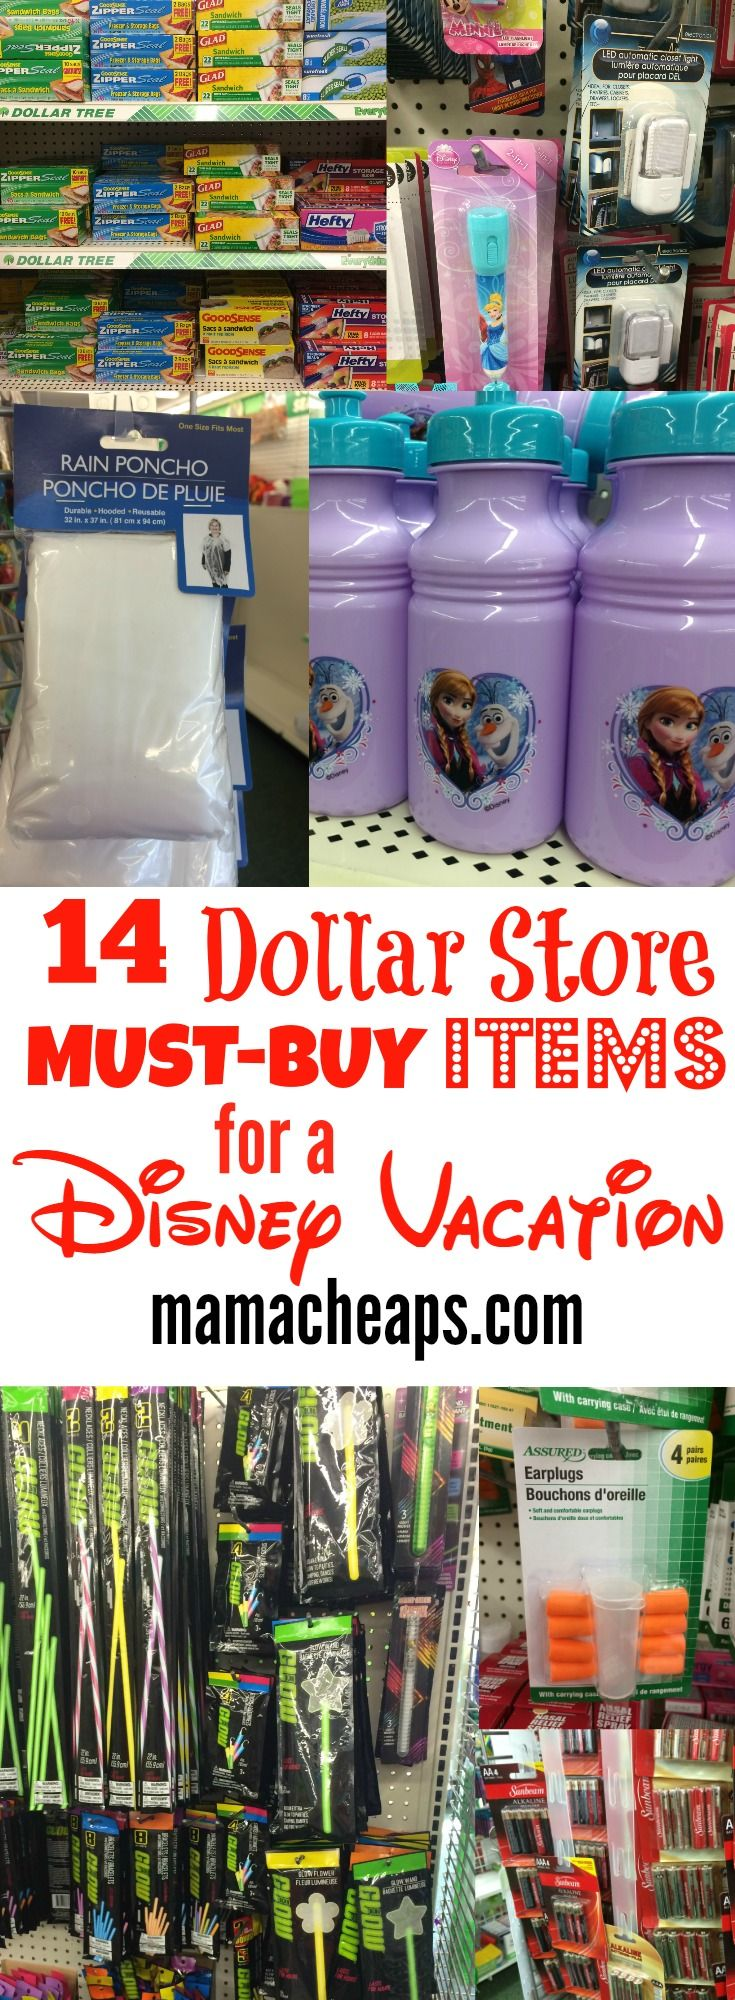 14 Dollar Store MUST-BUY Items for a Disney Vacation